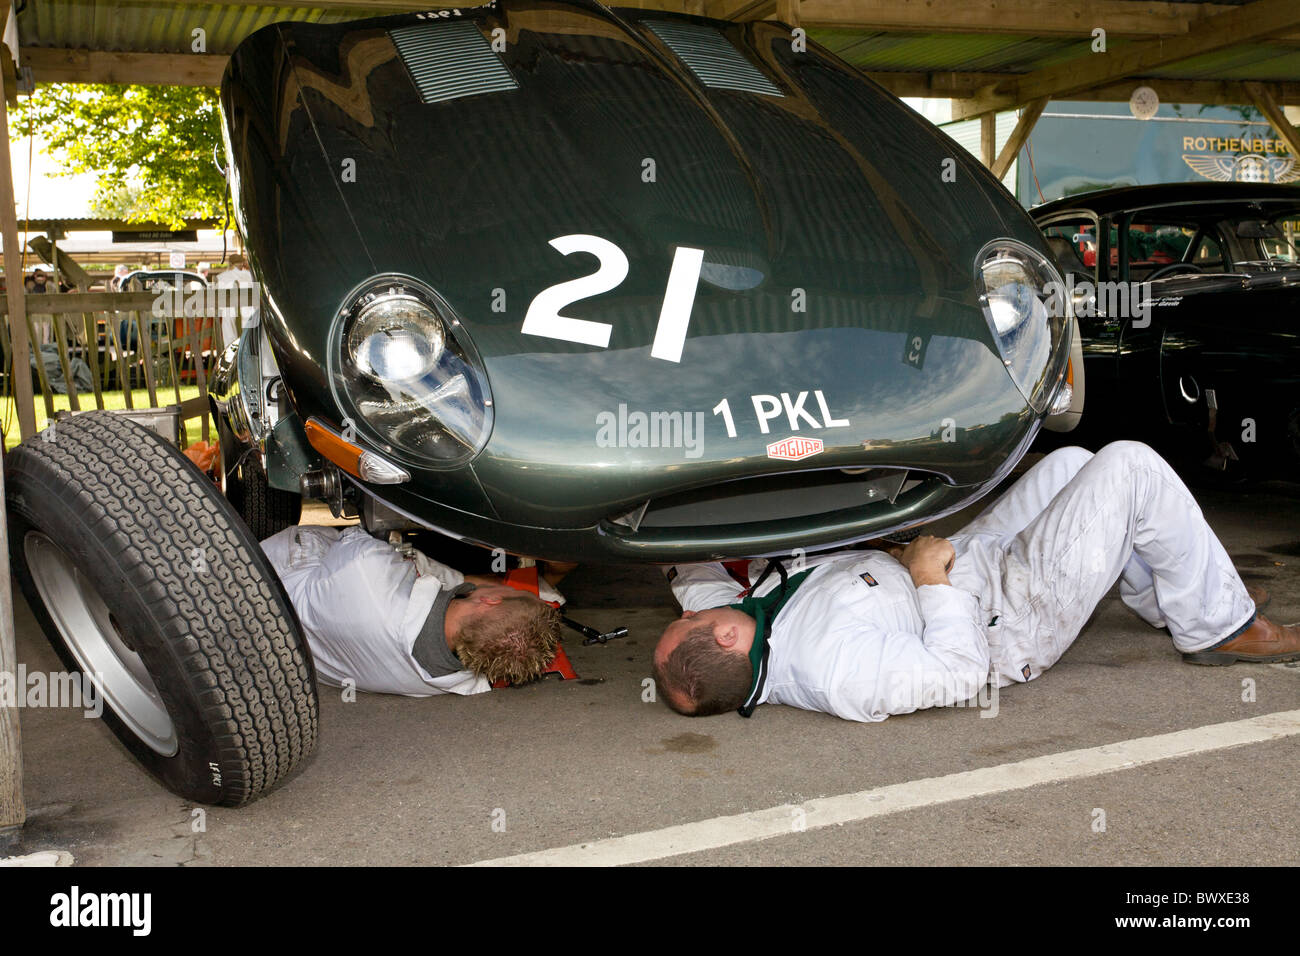 Mechanics at work on a 1961 Jaguar E-type at the 2010 Goodwood Revival meeting, Sussex, England, UK. - Stock Image